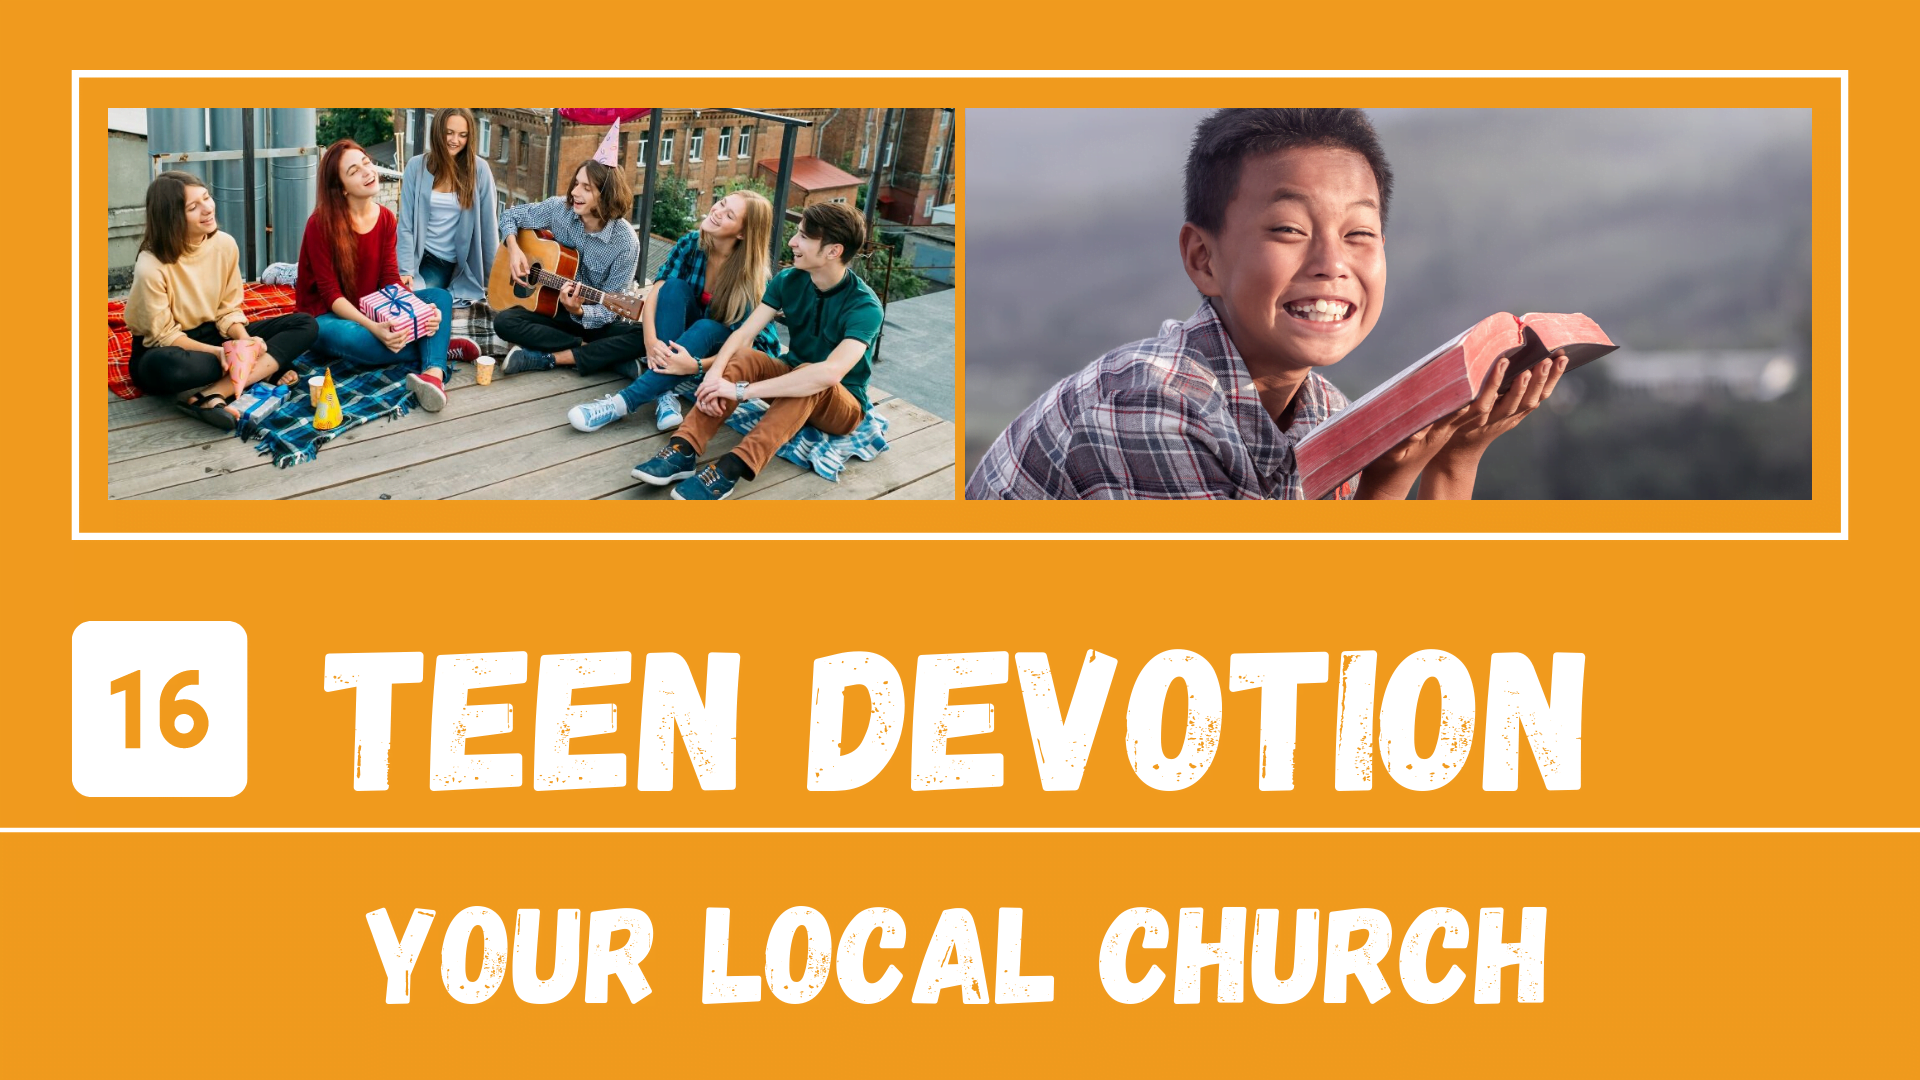 YT Thumb Day 15 – Teen Devotion_ Your Local Church (1)